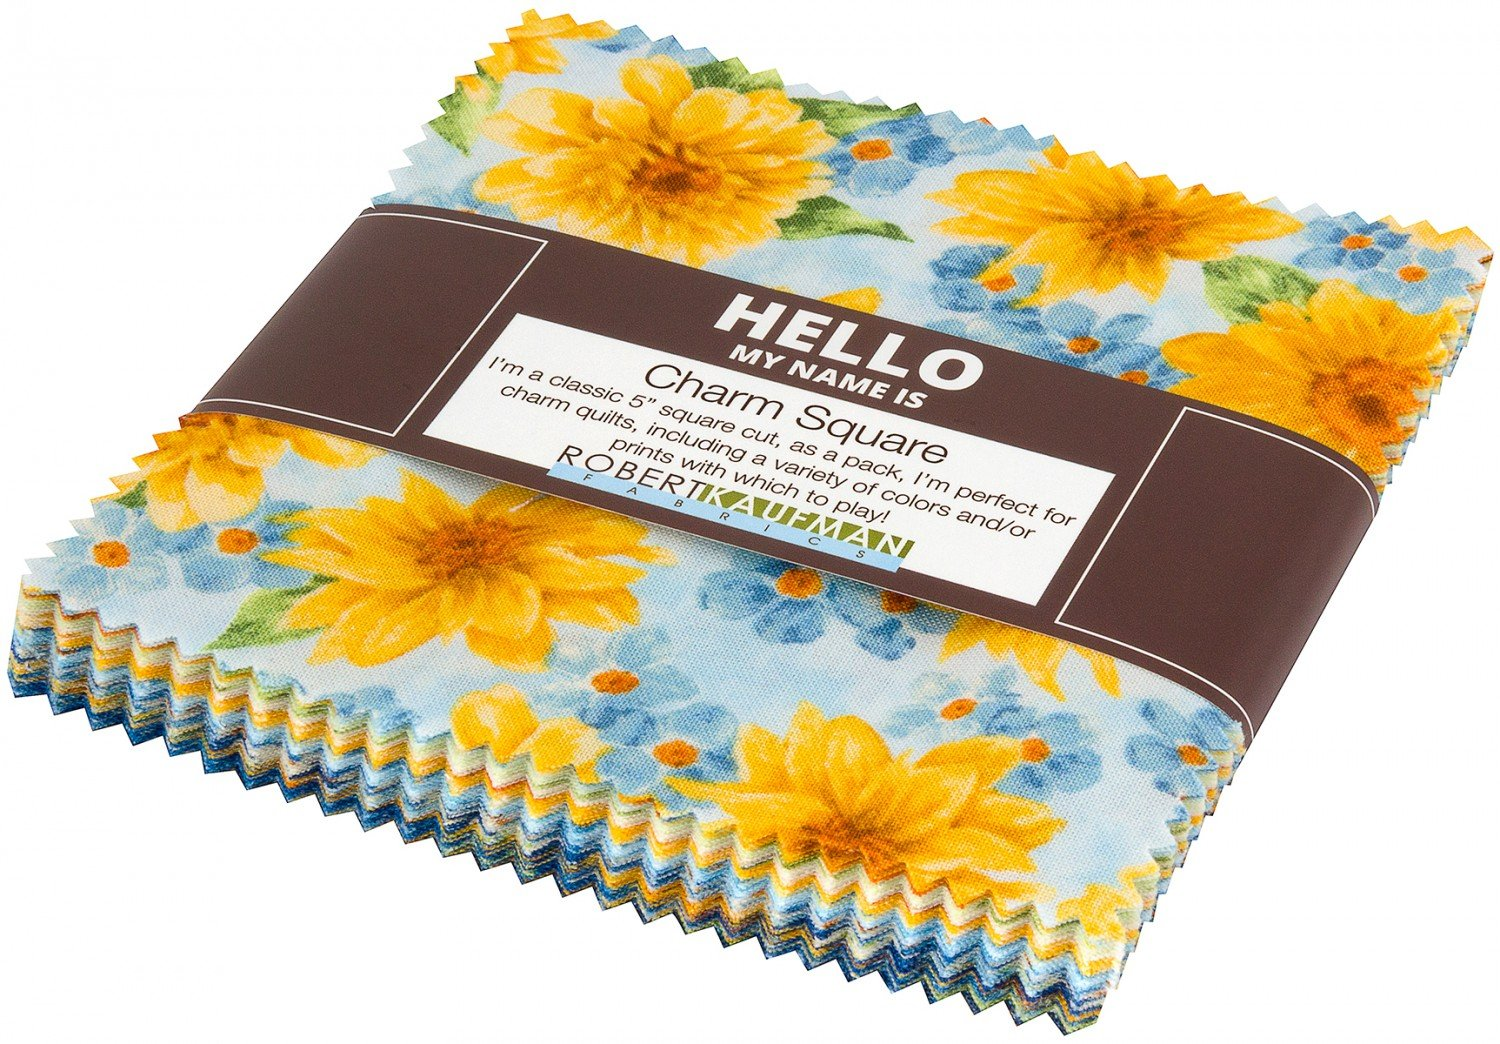 Gardenside Path. 5 inch Charm Squares 42 pieces